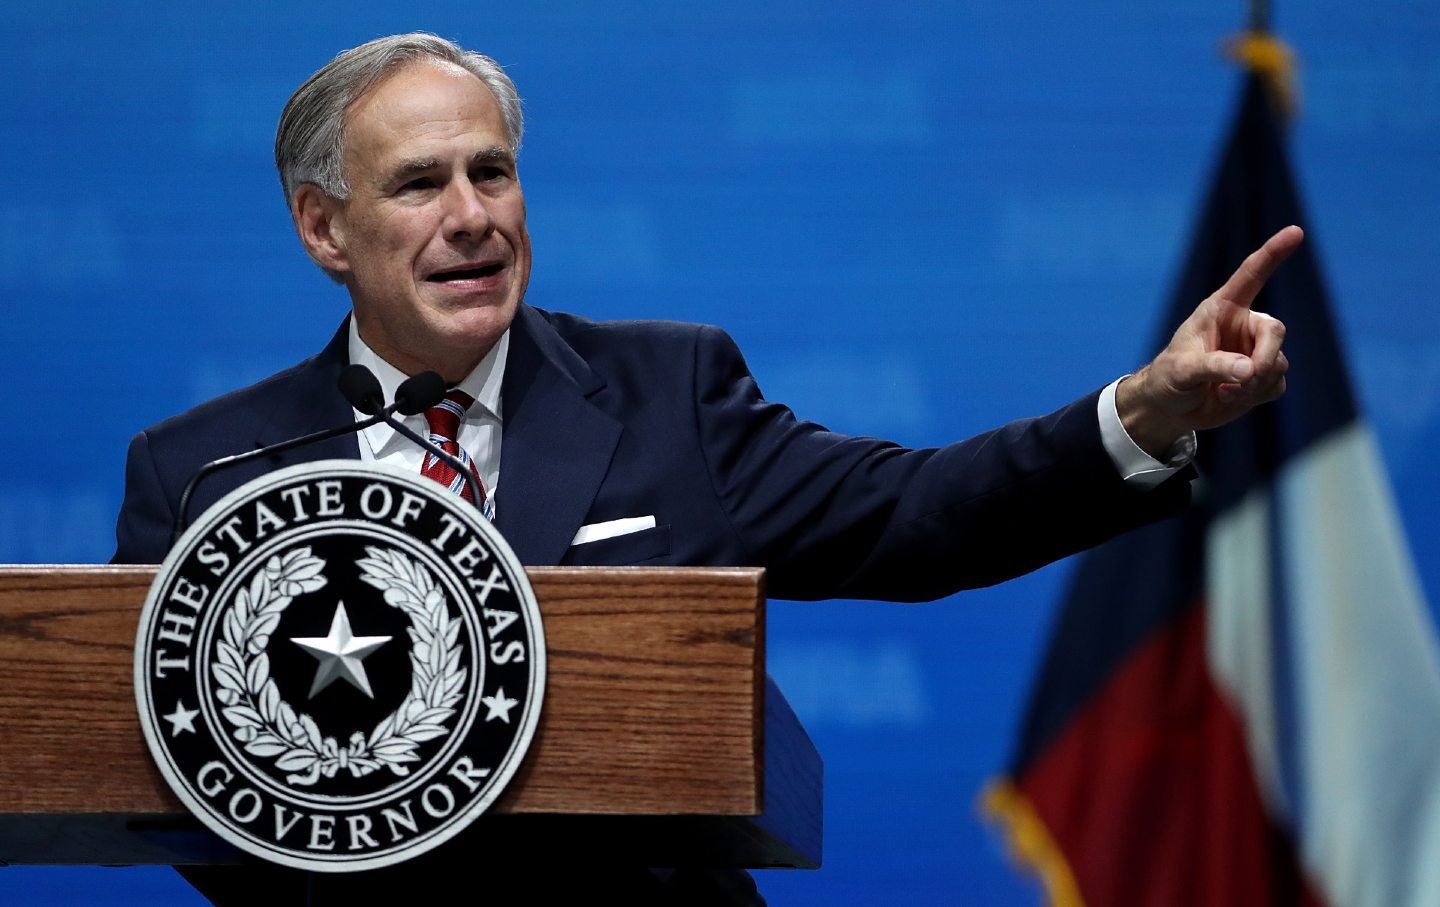 Greg Abbott at NRA Annual Meeting